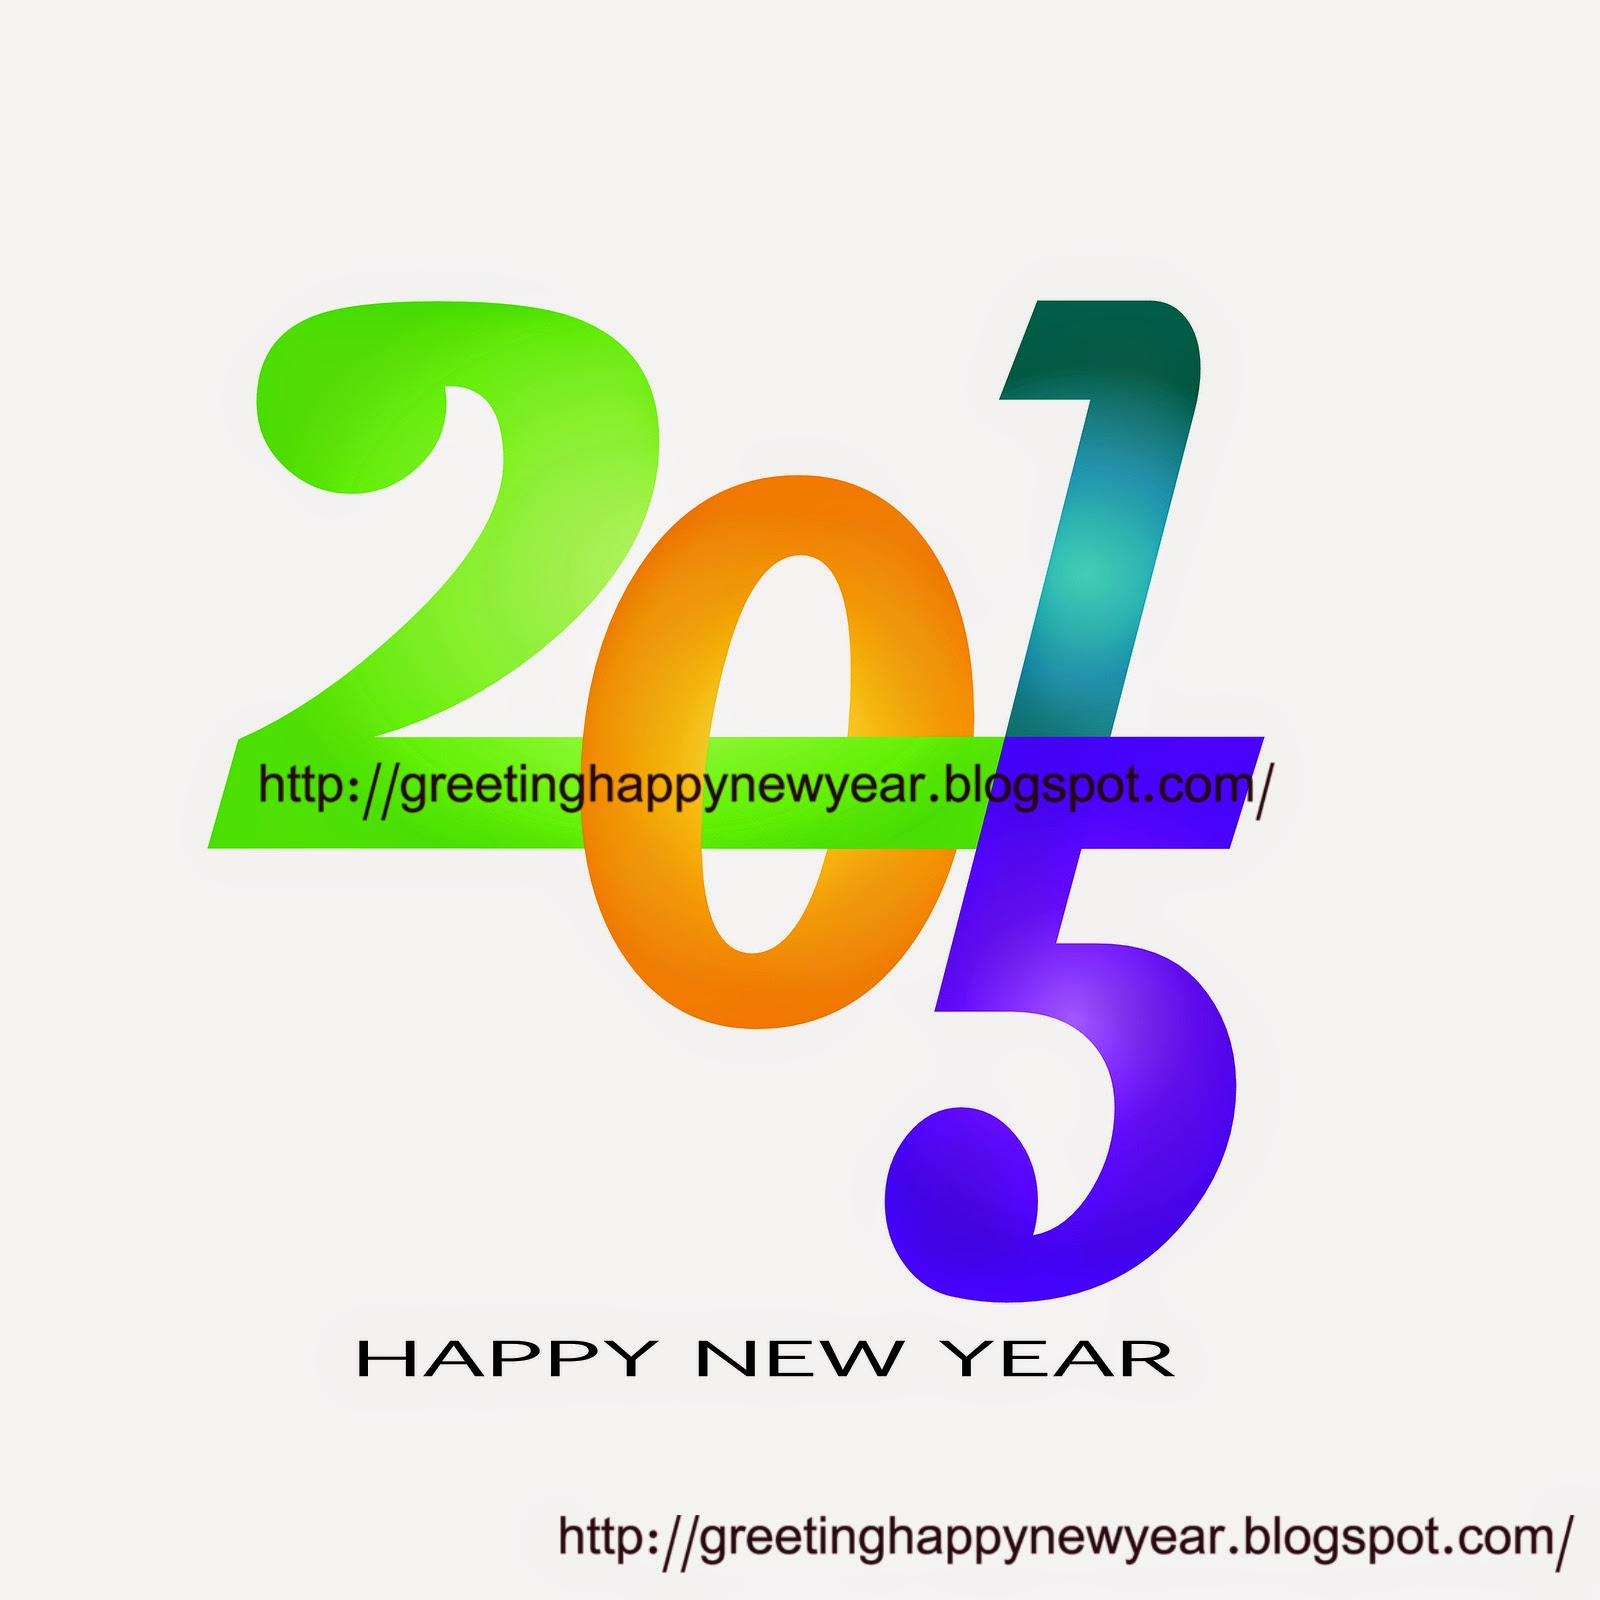 Greeting Happy New Year 2015 Images – Download Great Image